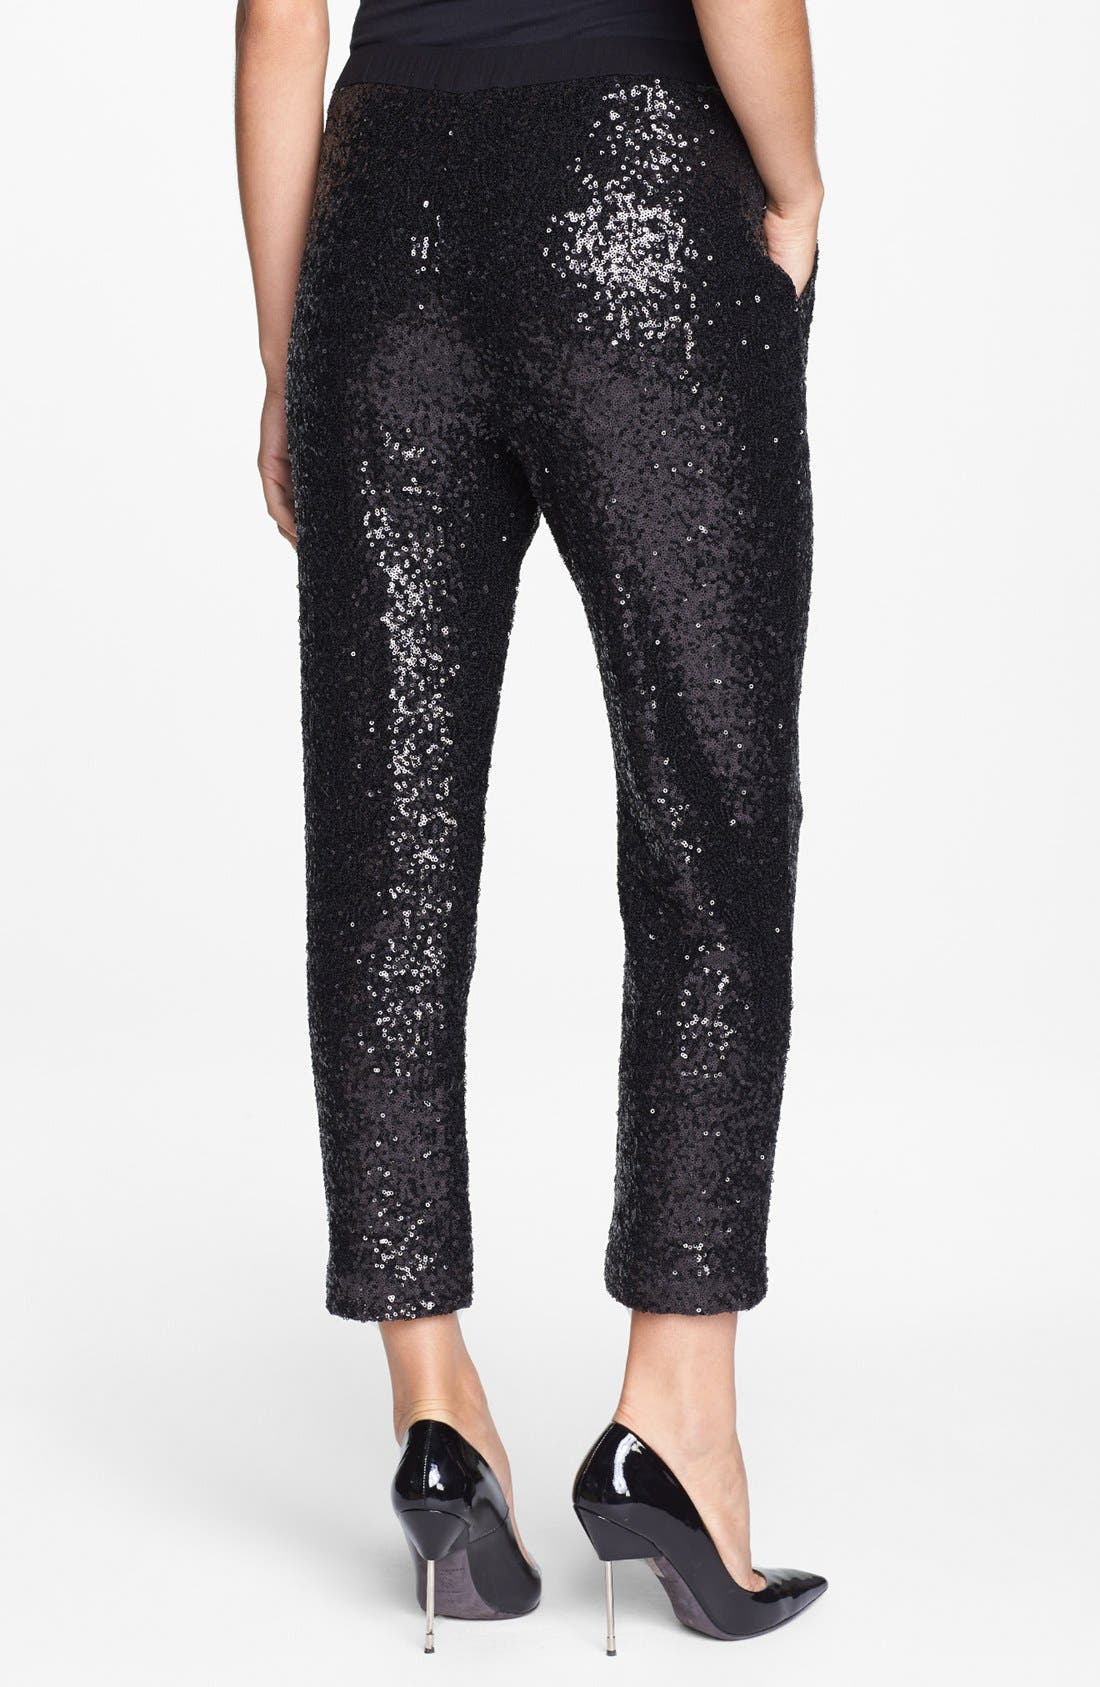 ELLA MOSS, Sequin Slouchy Trousers, Alternate thumbnail 5, color, 001